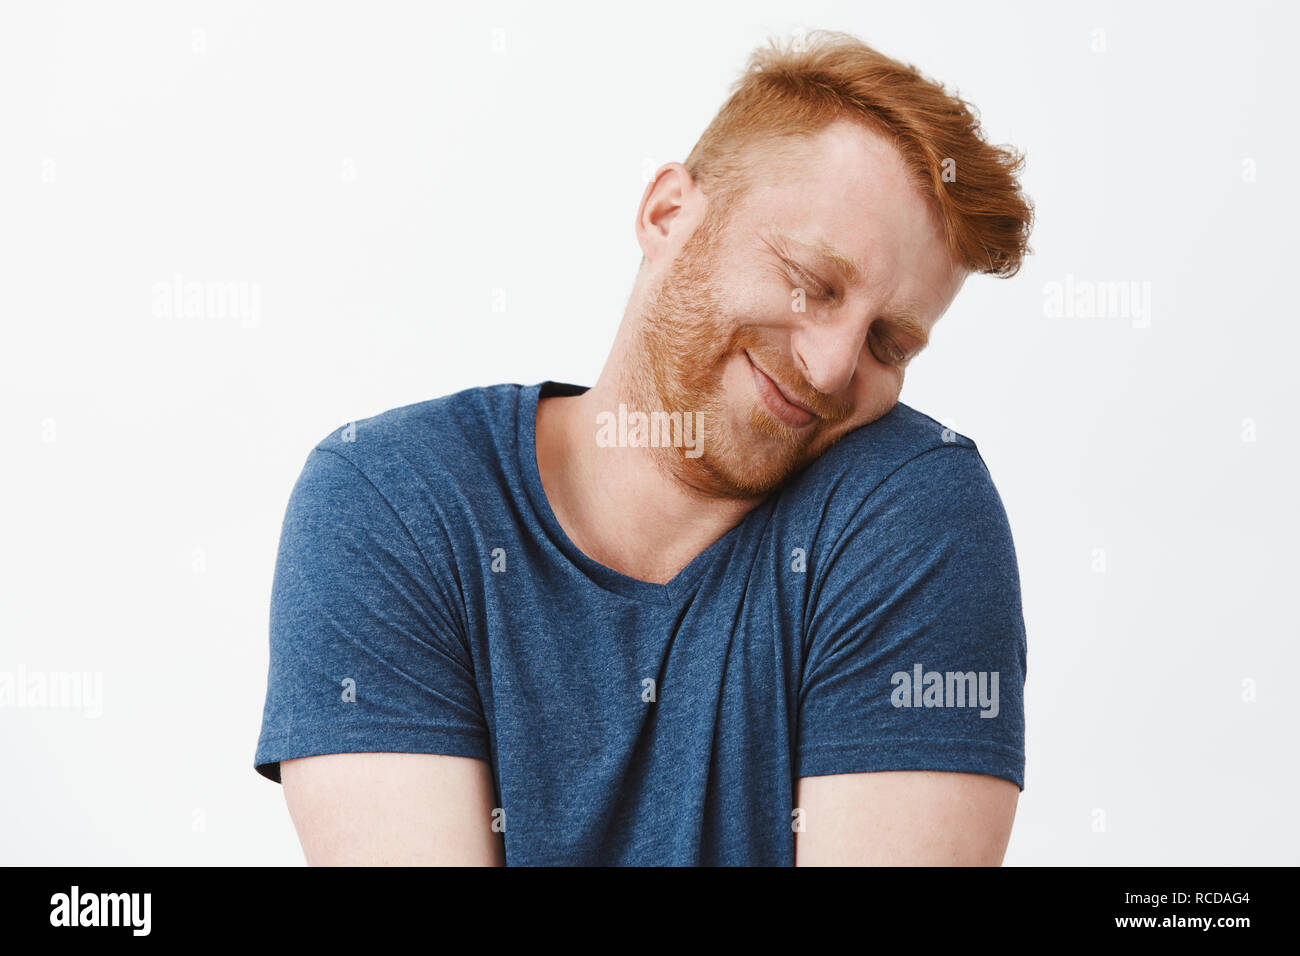 Silly and funny caucasian redhead guy with bristle, tilting head and leaning on shoulder with lovely and cute expression, smiling with closed eyes being tender and girly over gray background - Stock Image